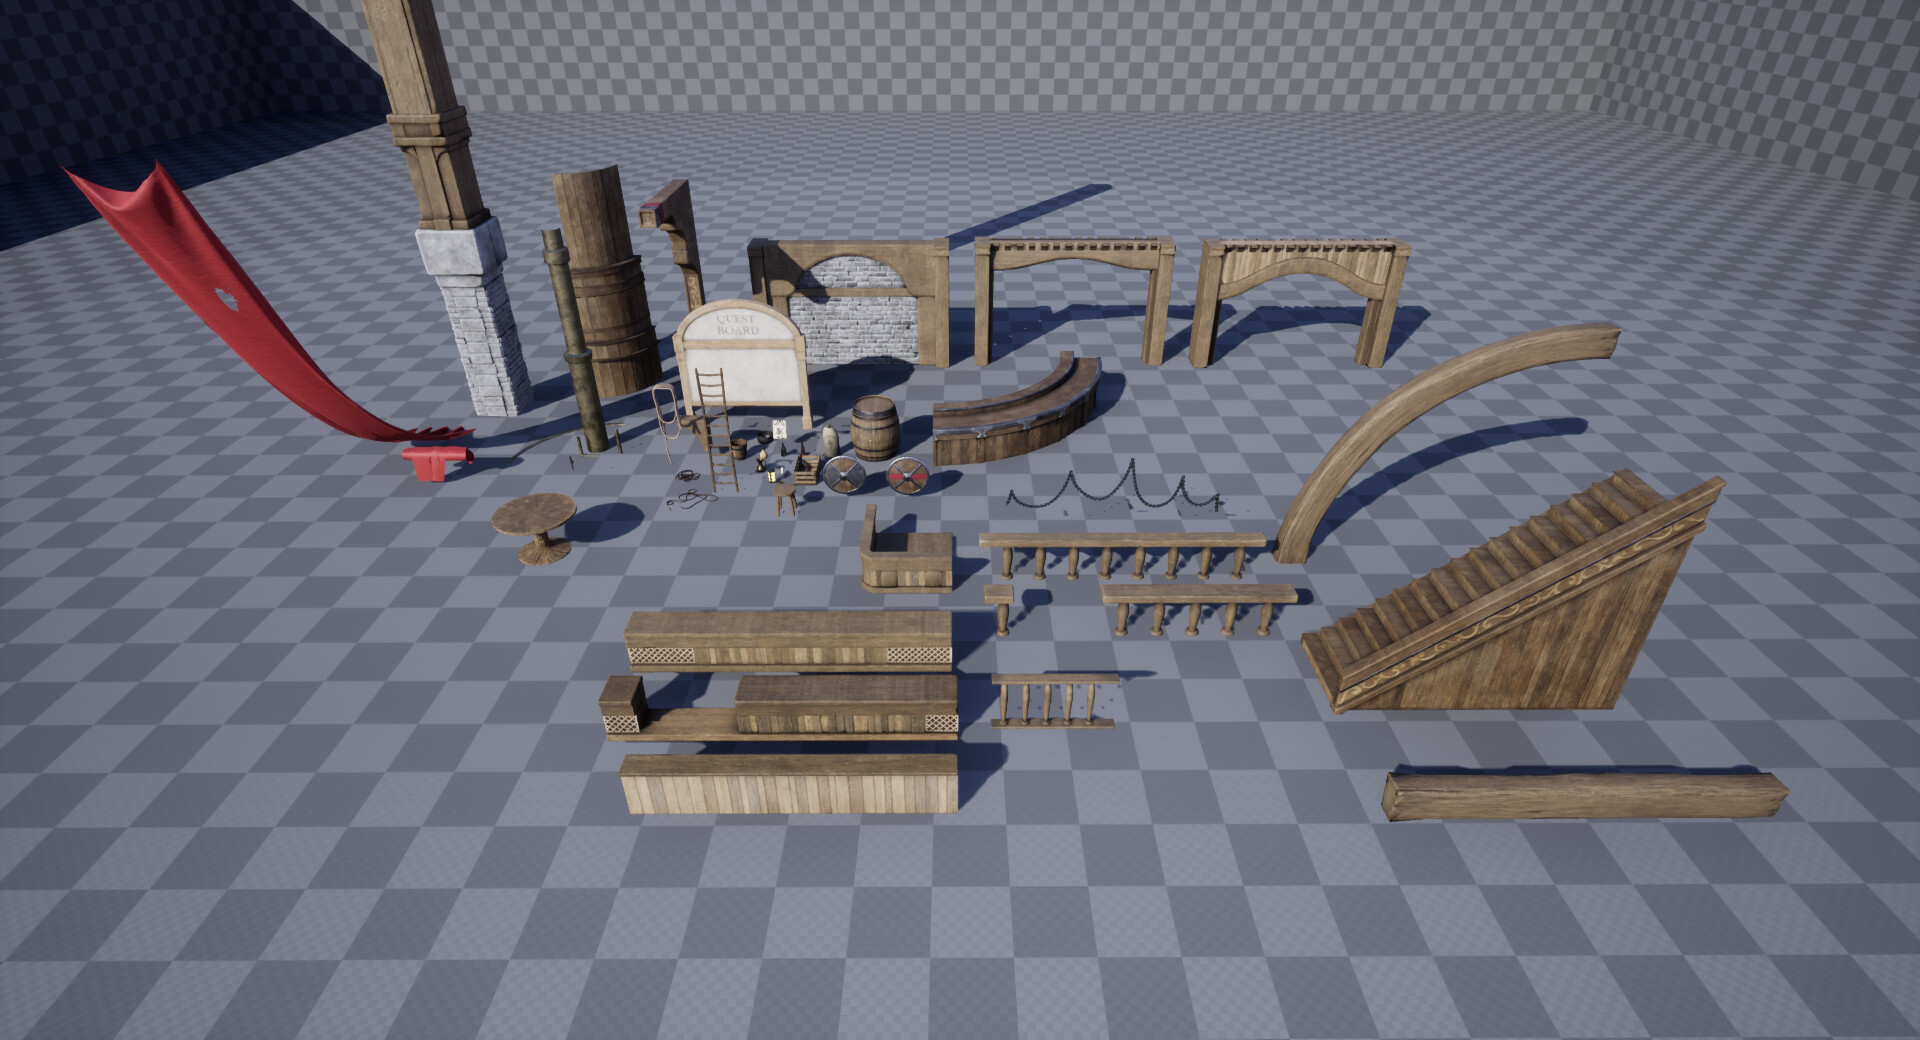 Overview of the props